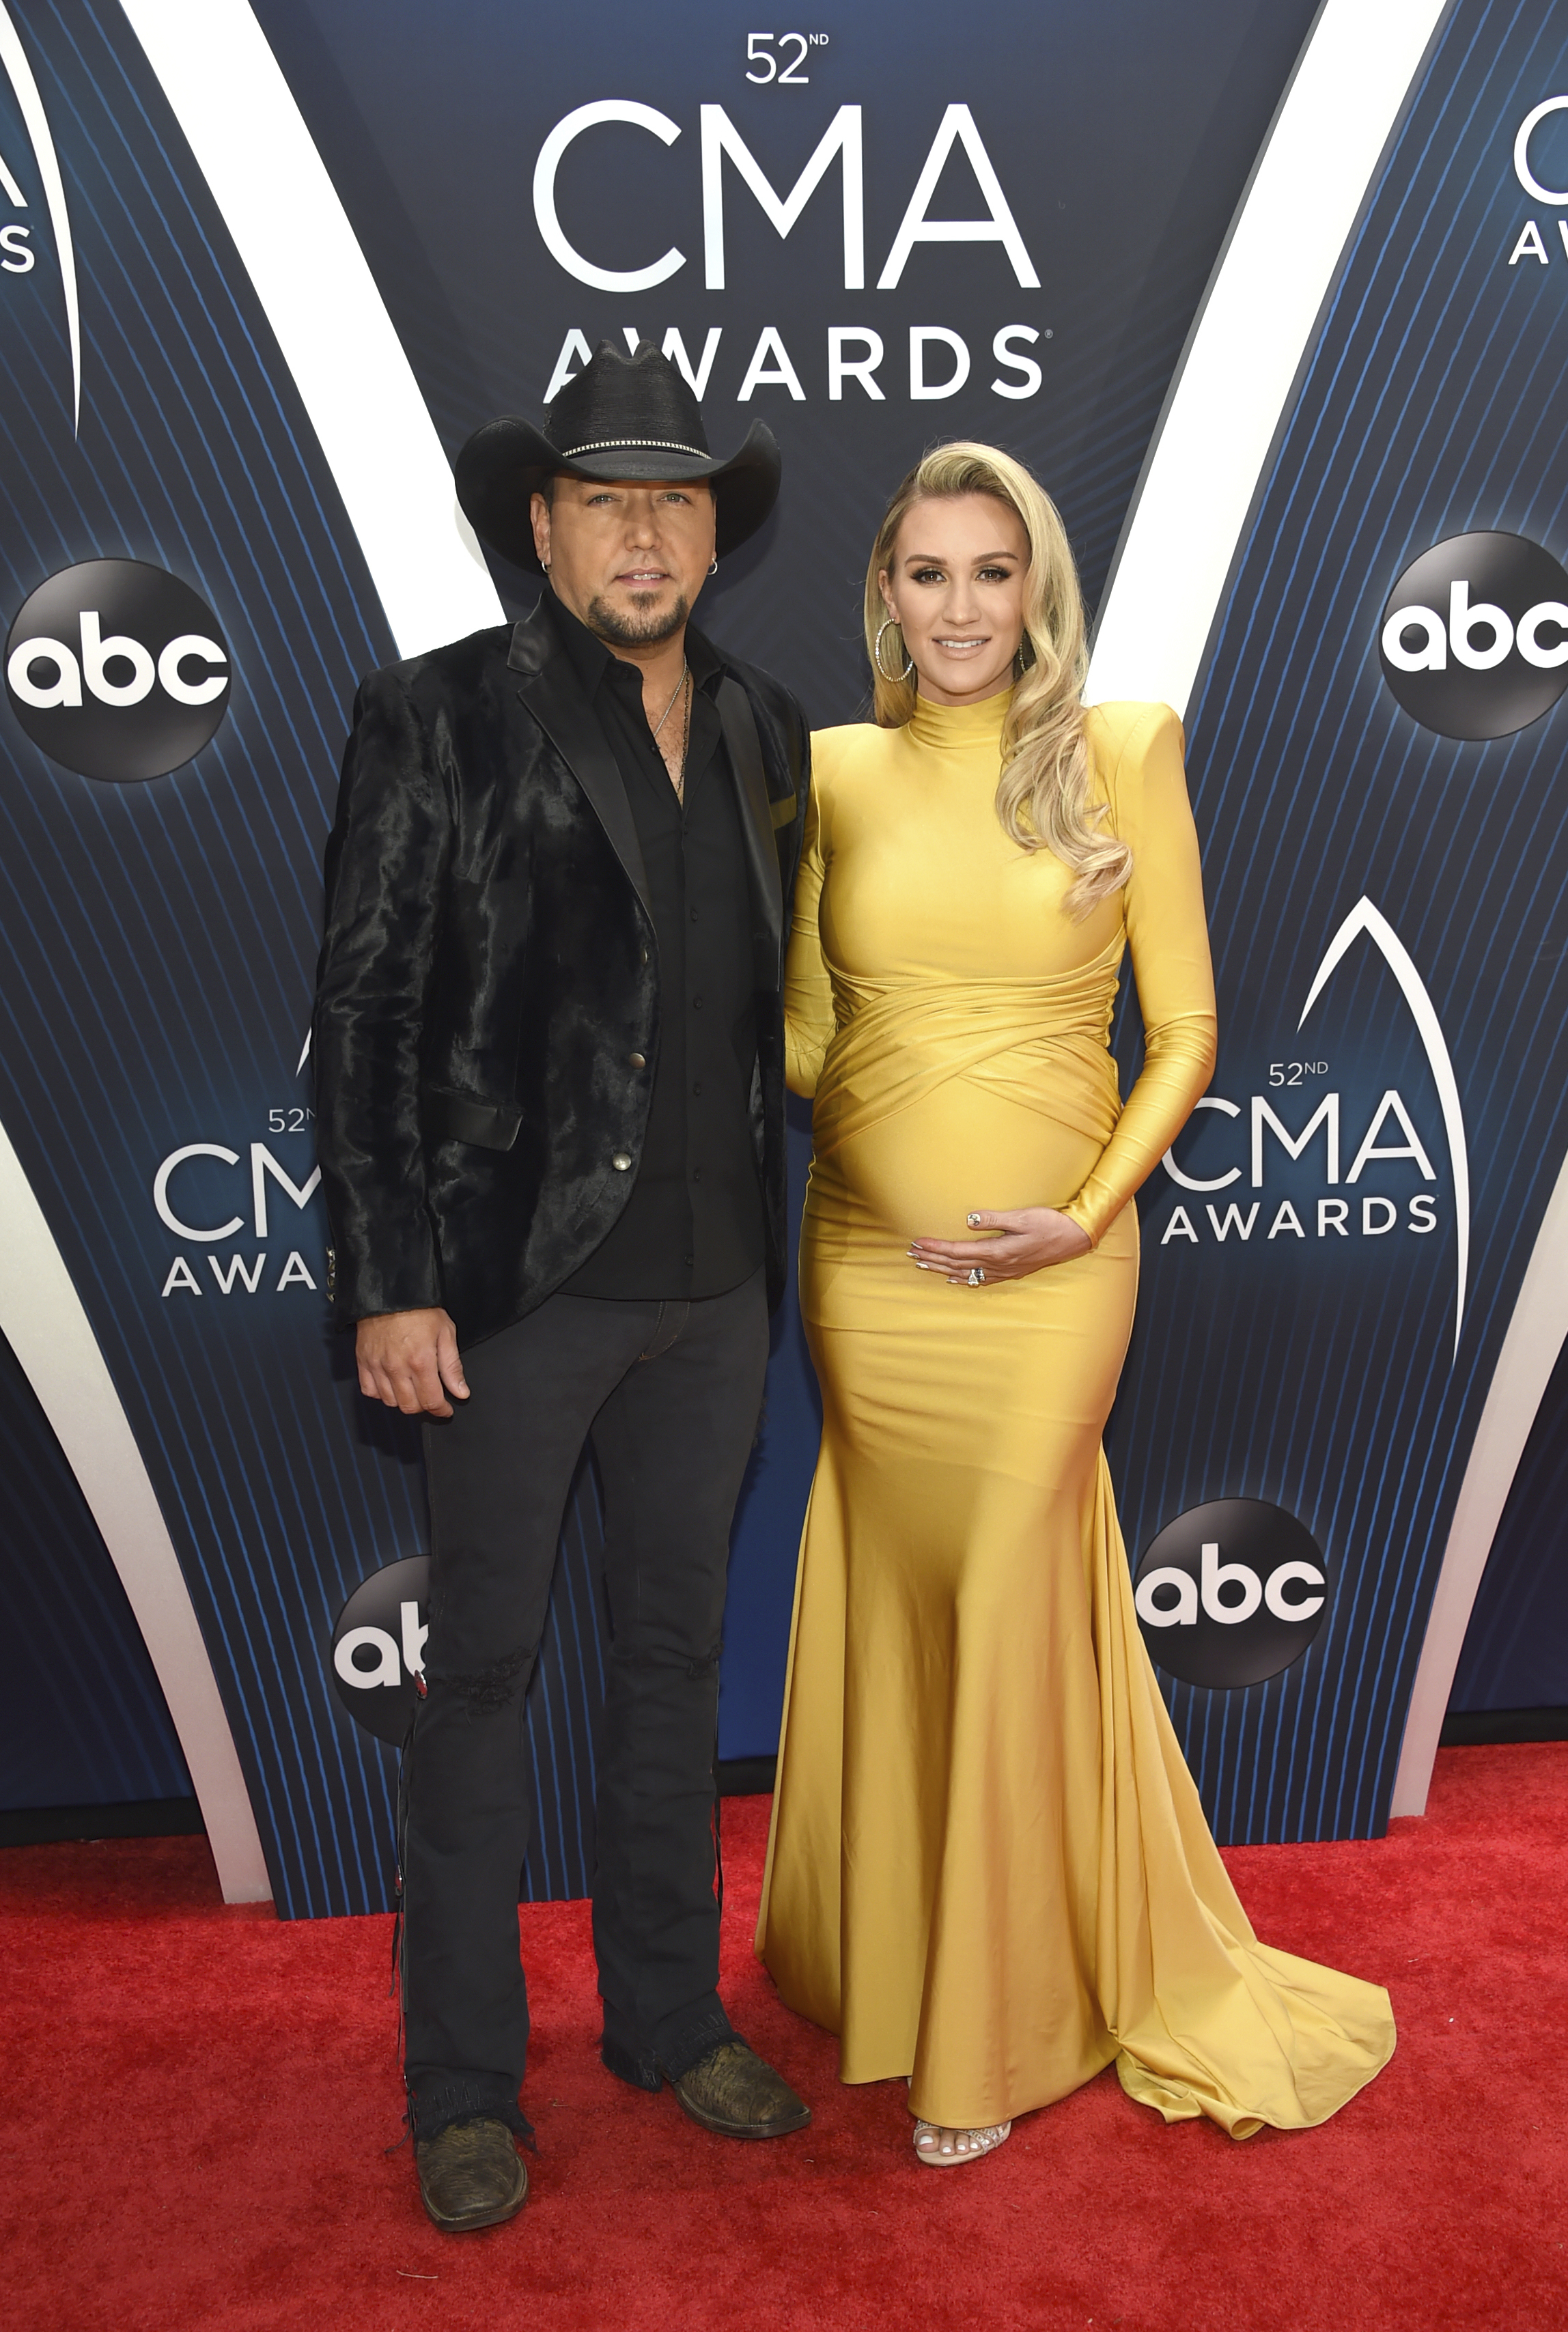 "<div class=""meta image-caption""><div class=""origin-logo origin-image ap""><span>AP</span></div><span class=""caption-text"">Jason Aldean, left, and Brittany Kerr arrive at the 52nd annual CMA Awards on Wednesday, Nov. 14, 2018, in Nashville, Tenn. (Photo by Evan Agostini/Invision/AP) (Evan Agostini/Invision/AP)</span></div>"